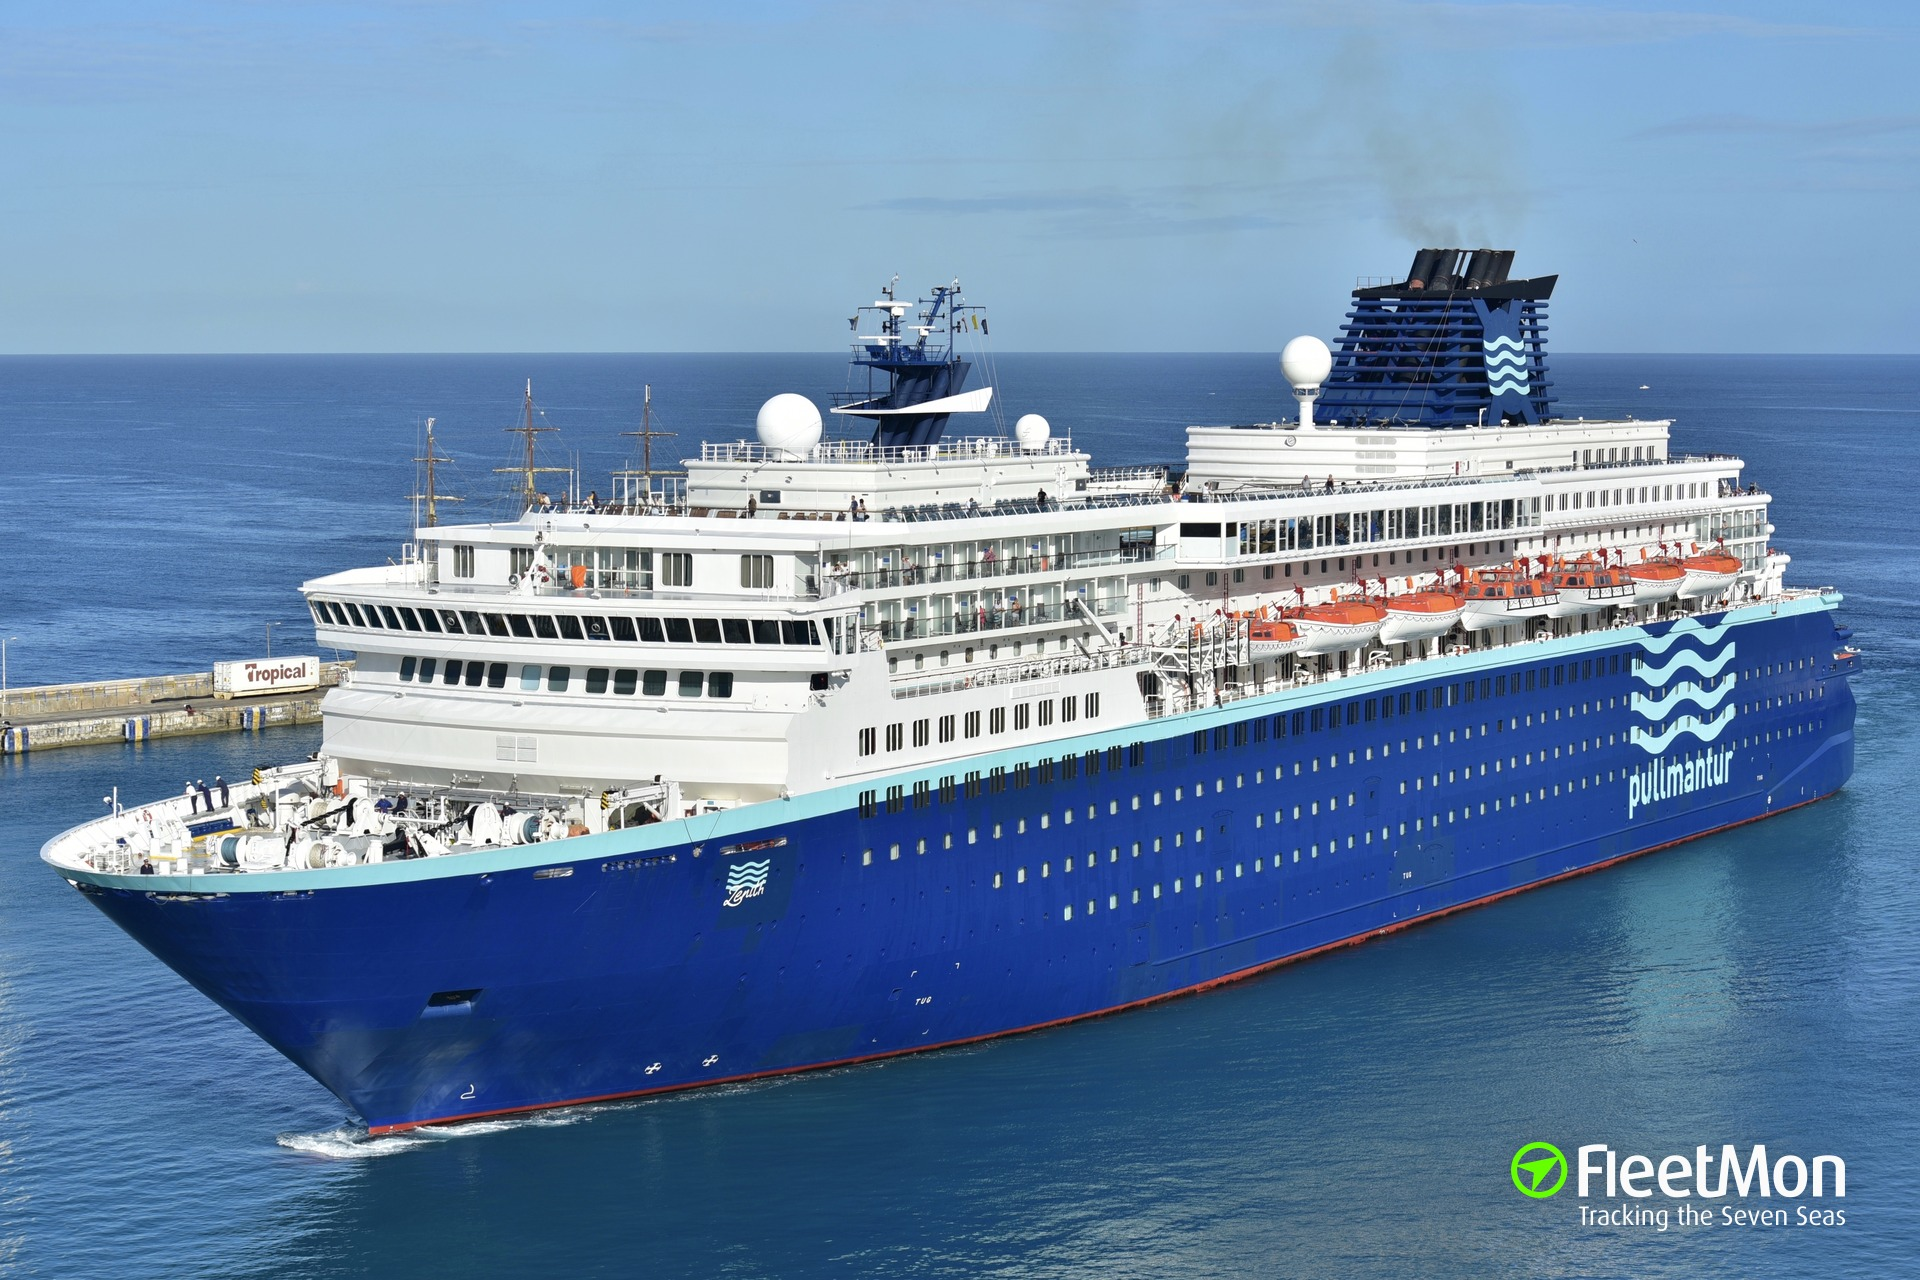 Fire in engine room of cruise liner Zenith off Venice